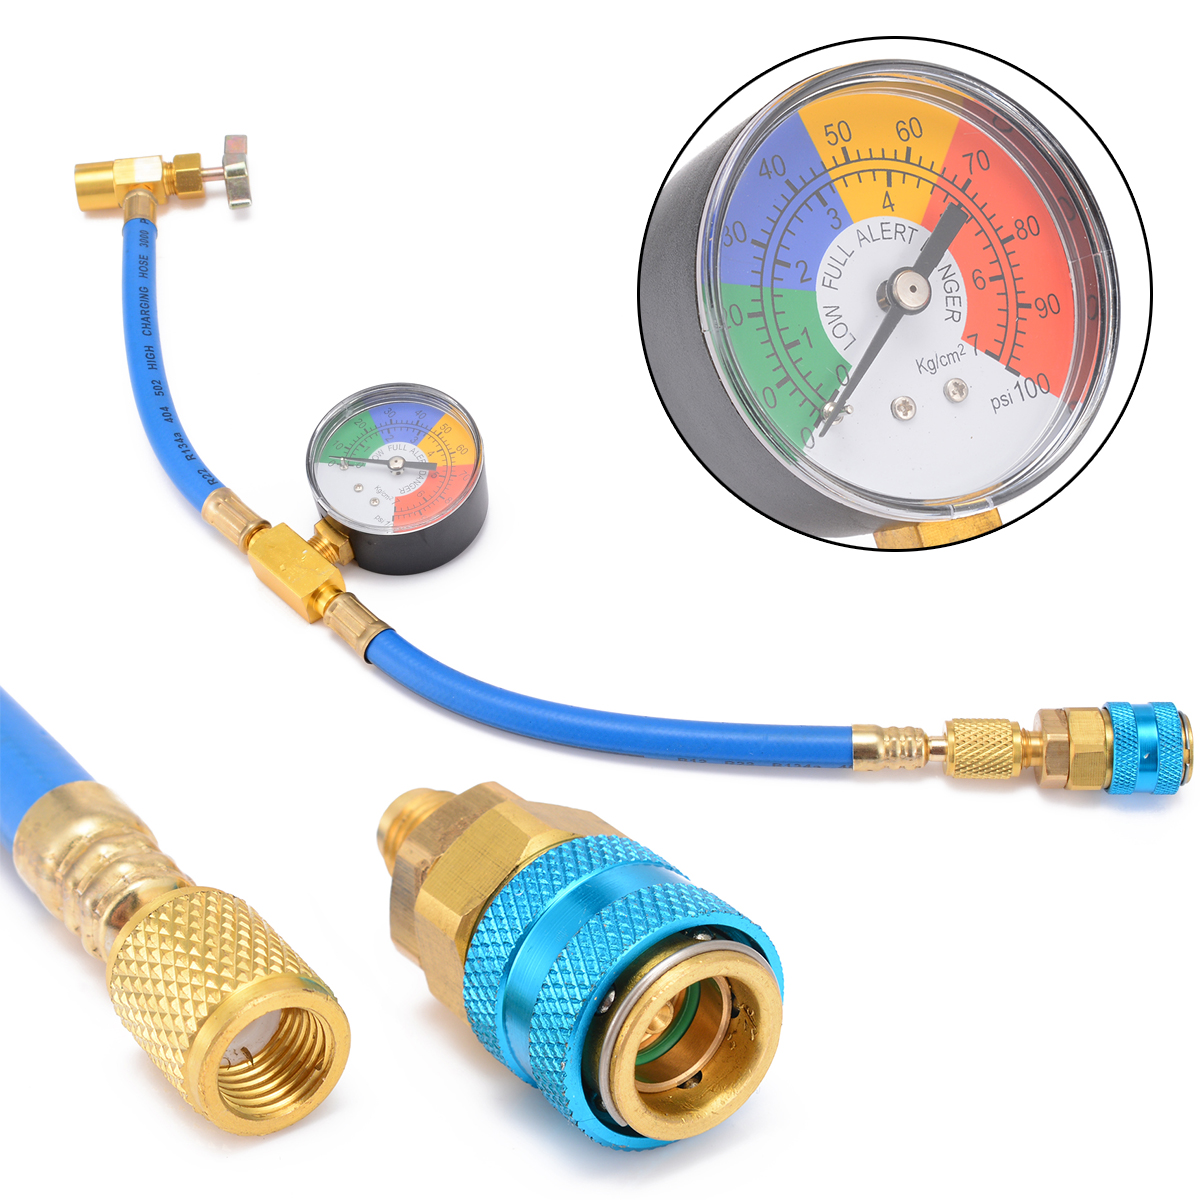 цена на R-134A Recharge Measuring Kit Car Air Conditioning Pressure Gauge System Hose Brass Can Tap Refrigerant Recharge Hose Mayitr